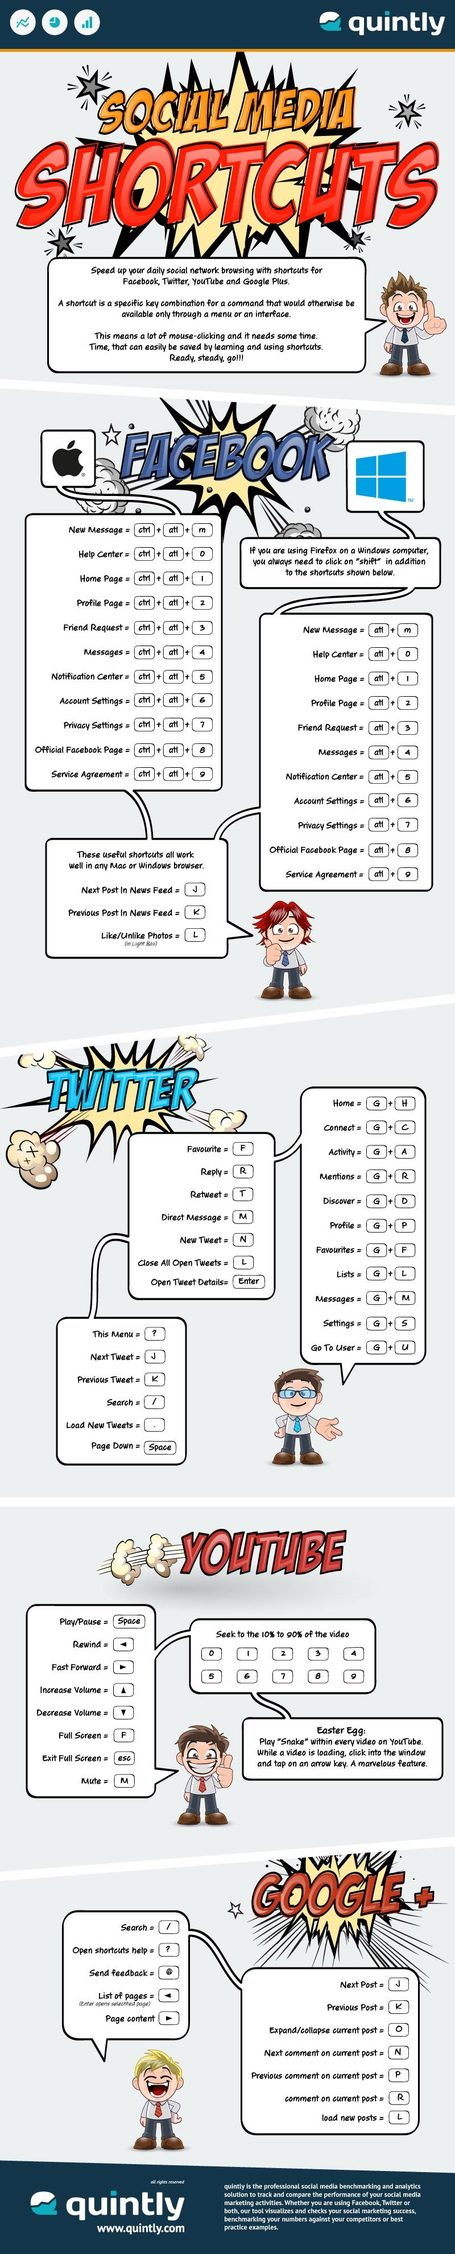 Social Media: Infographic Shortcuts for Facebook, Twitter, YouTube and Google+ | The 21st Century | Scoop.it